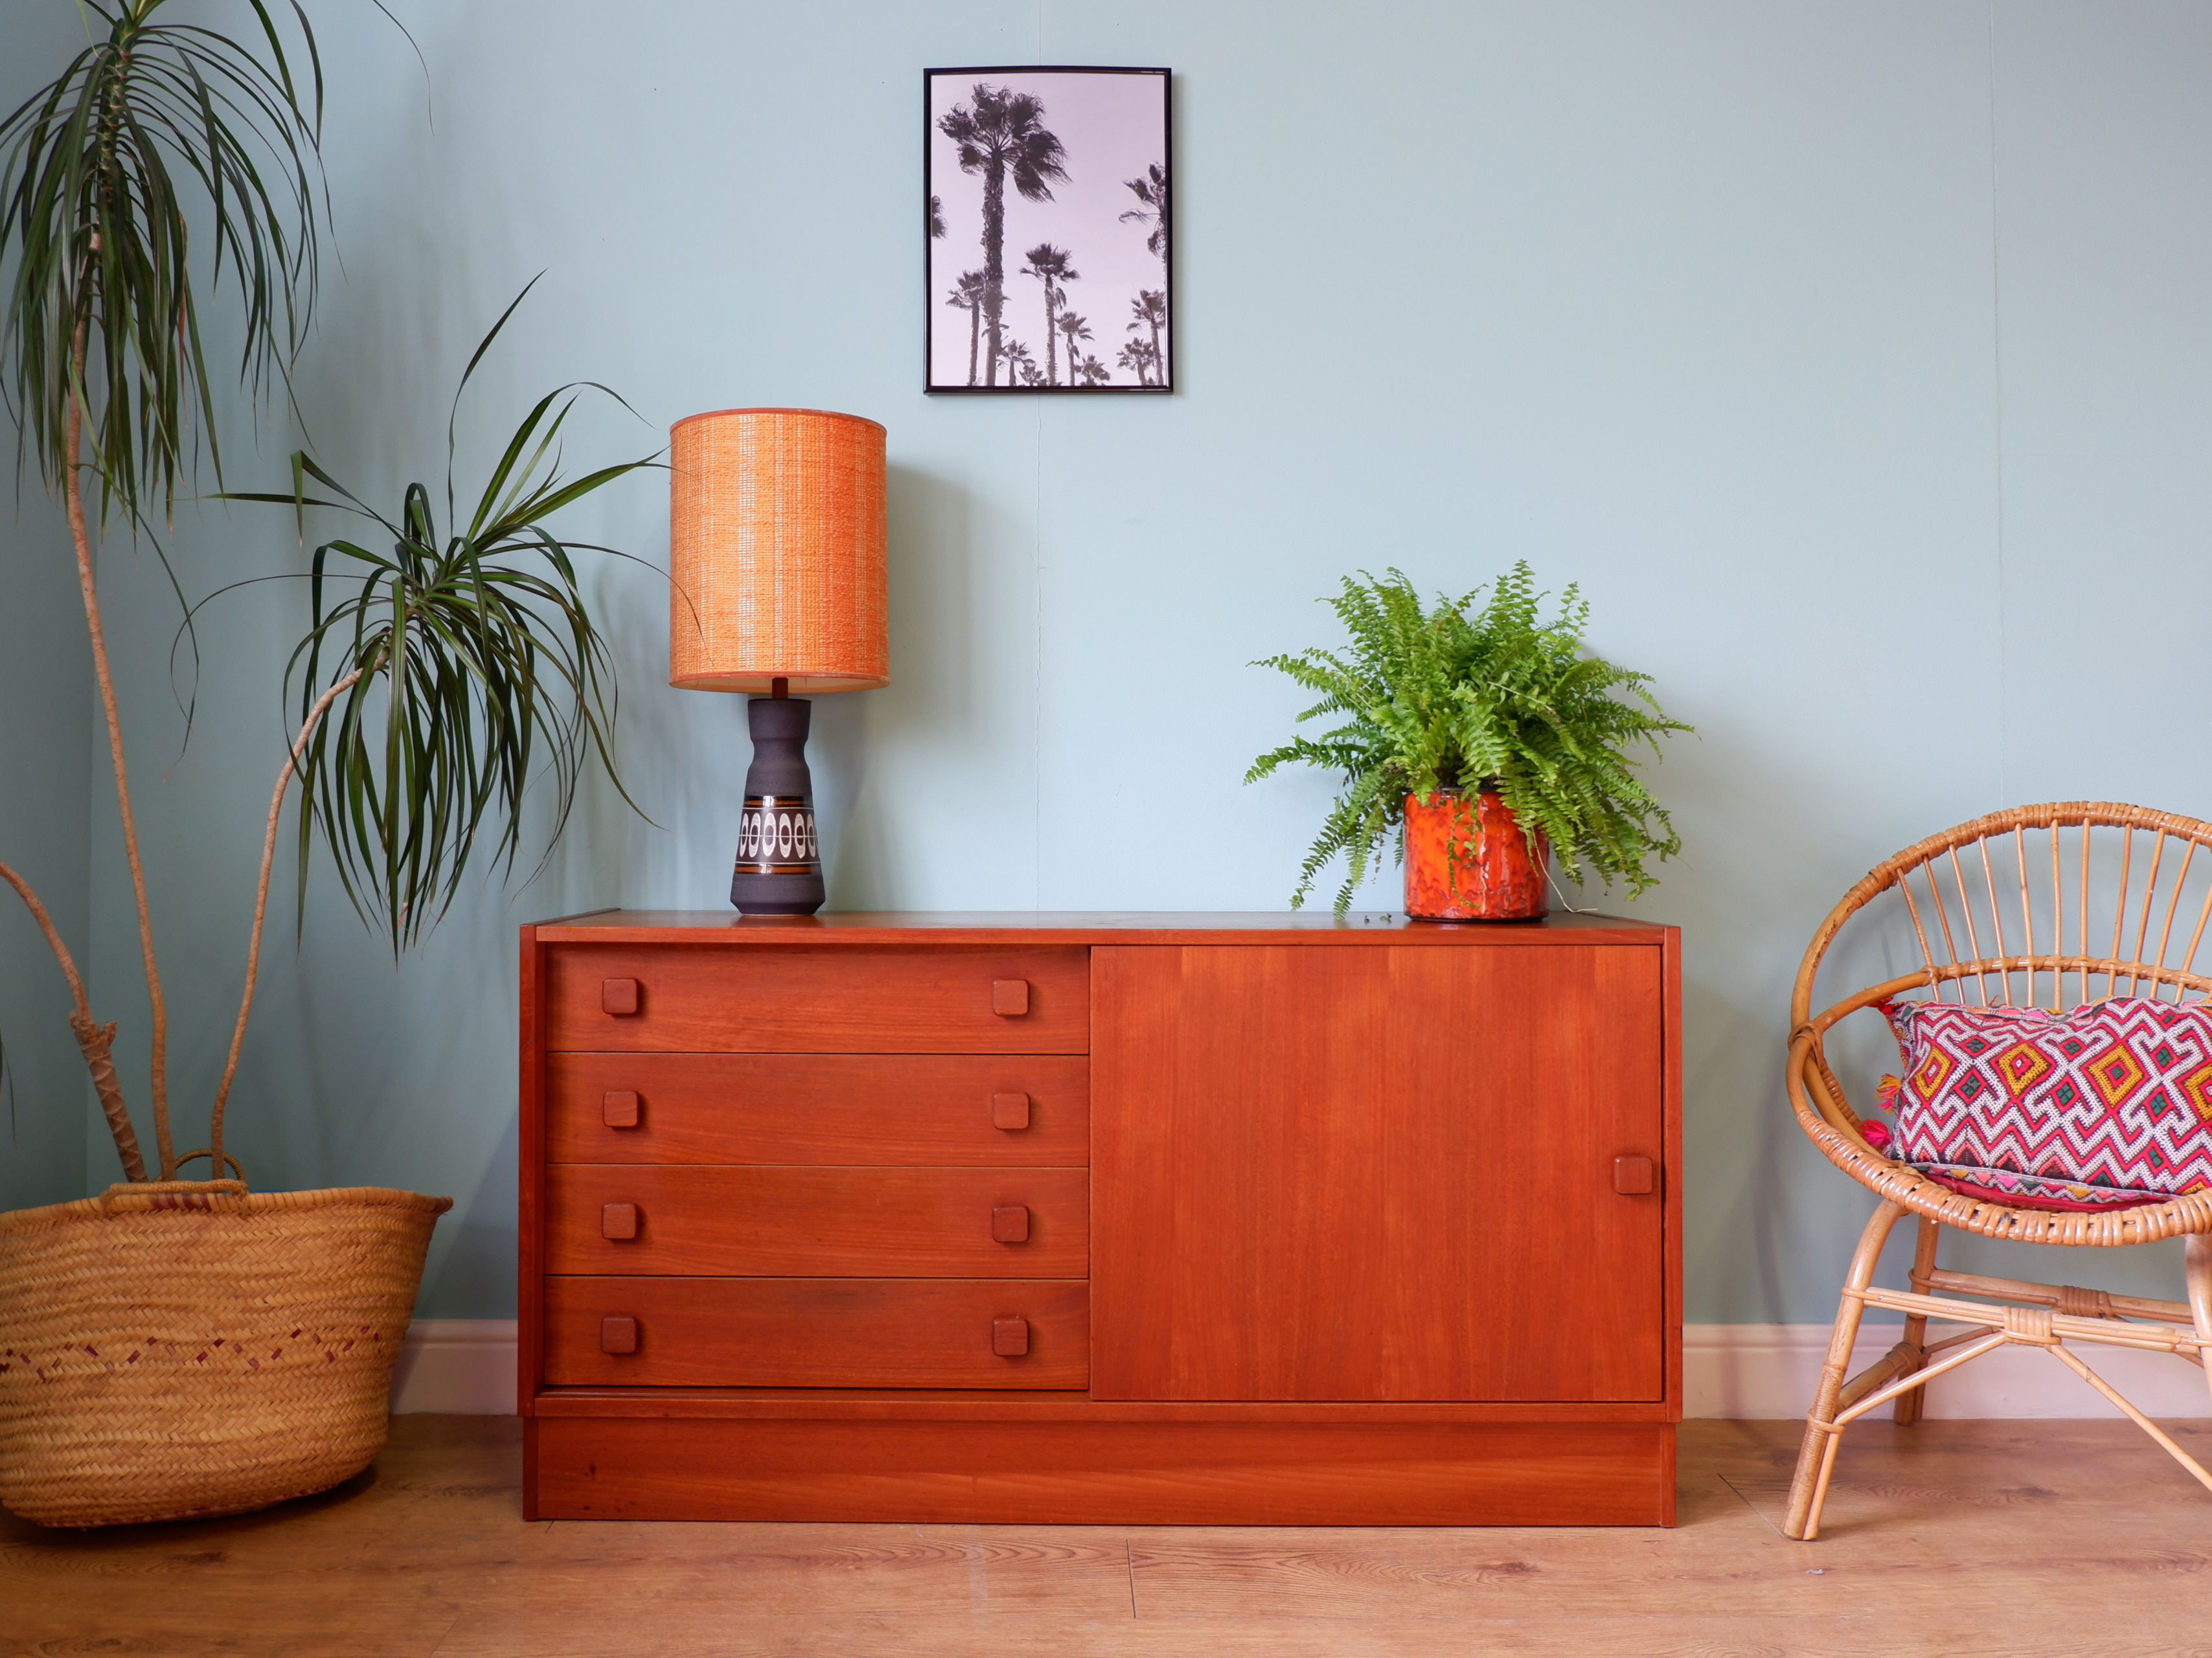 c134975f2 Mid century Danish sideboard by Domino Mobler